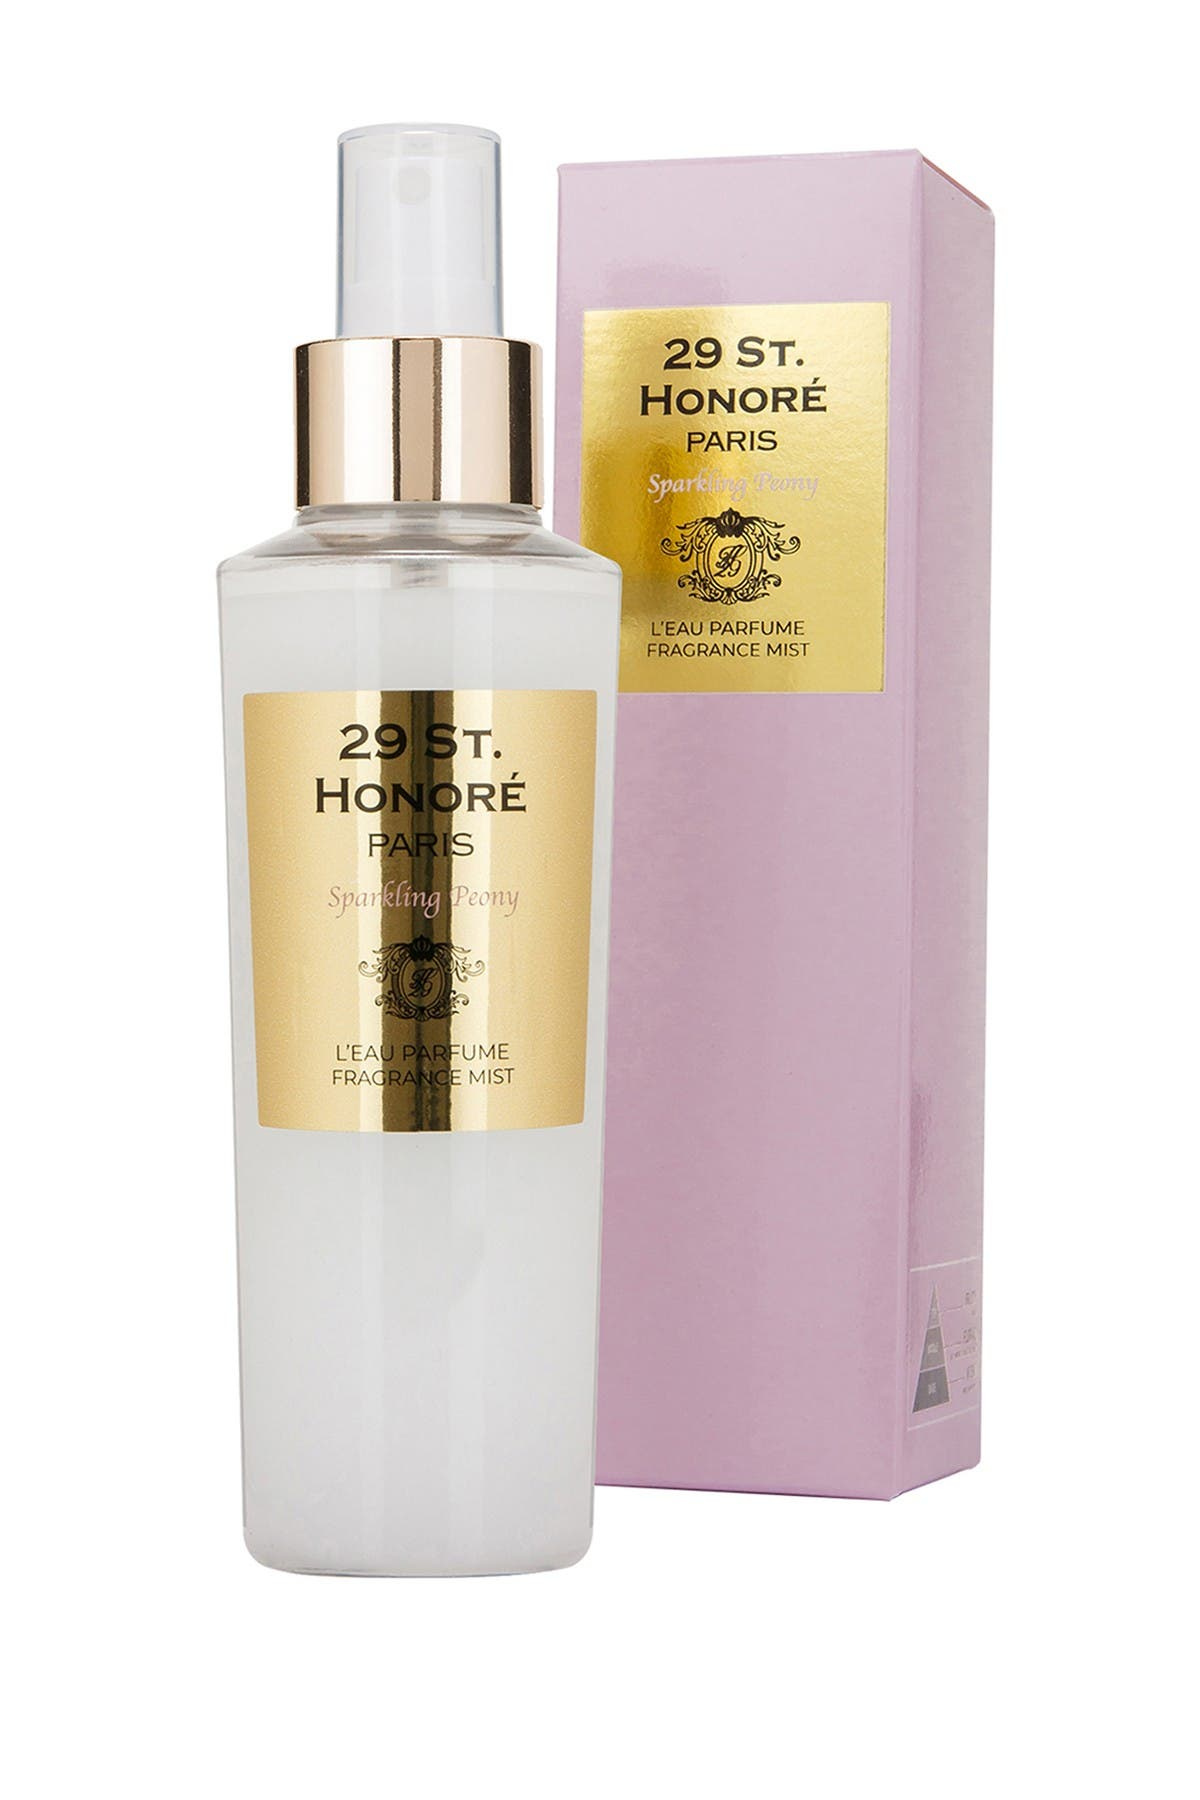 Image of 29 St. Honore Miracle Water Fragranced Body Mist - Sparkling Peony